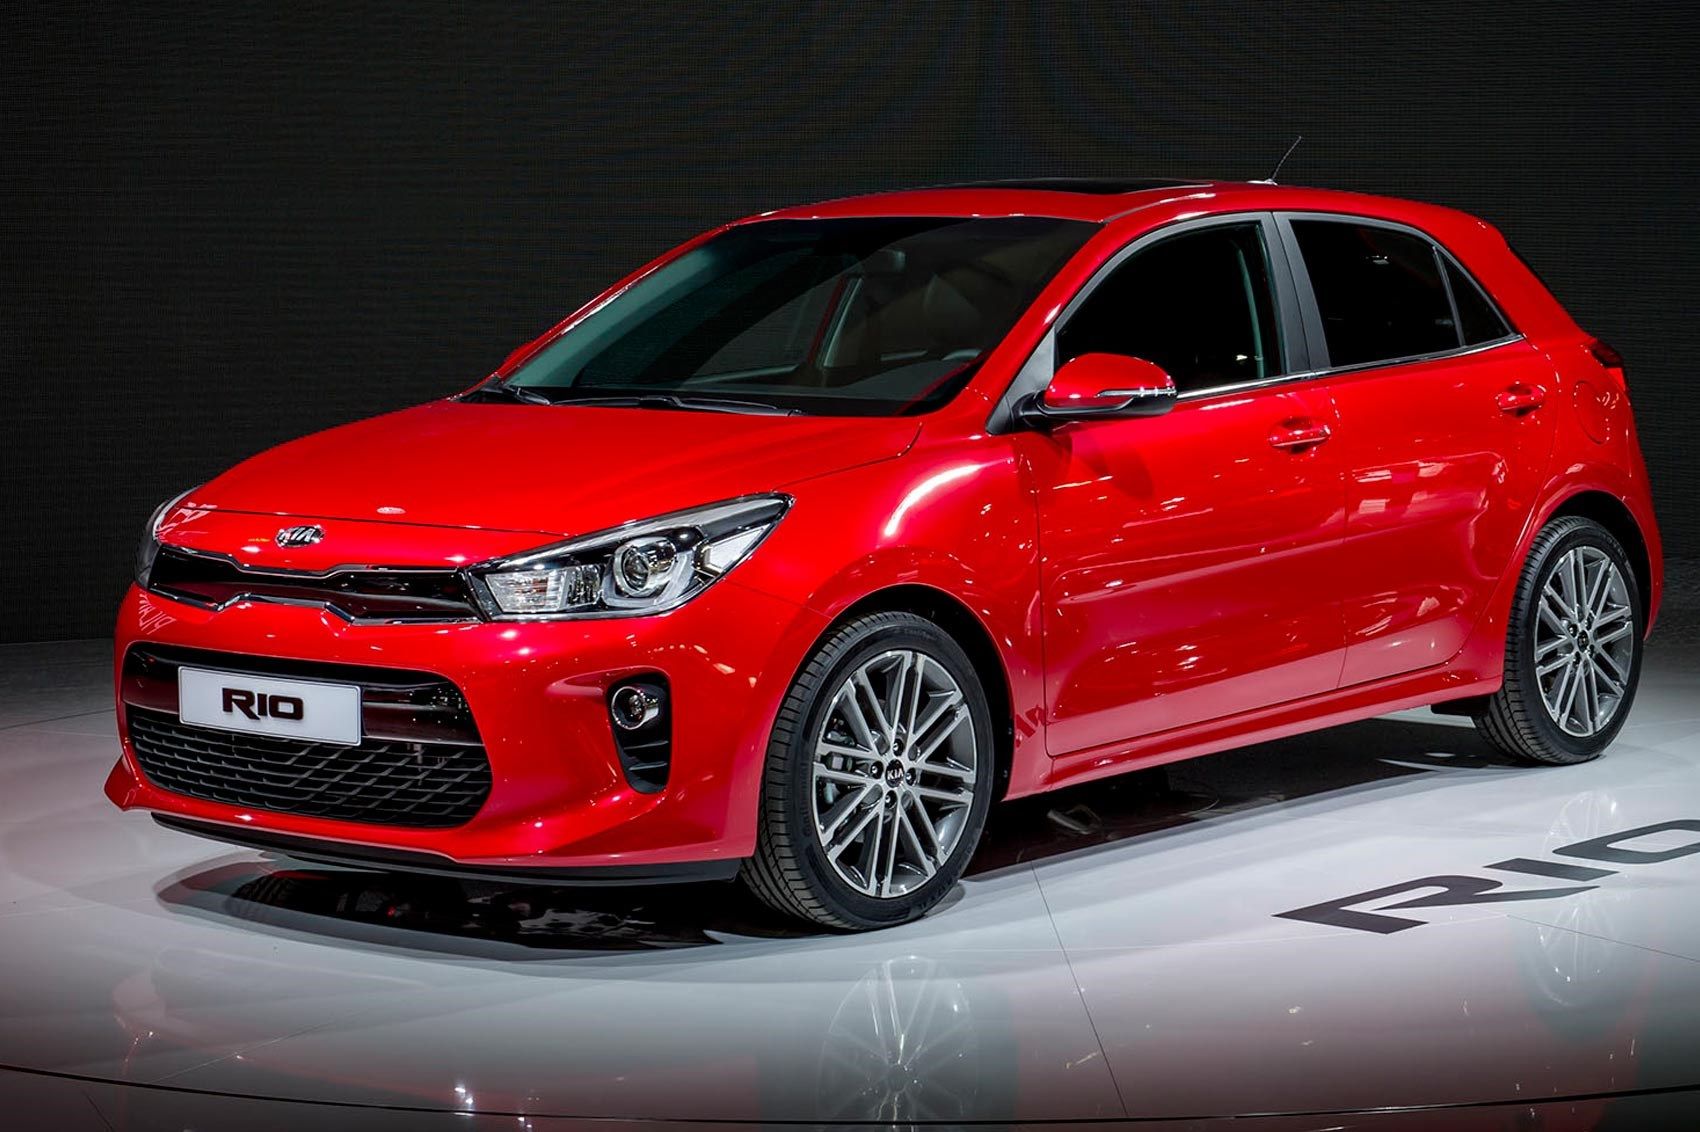 New Kia Rio Revealed Latest On Kias Upcoming Fiesta Rival CAR - Upcoming auto shows